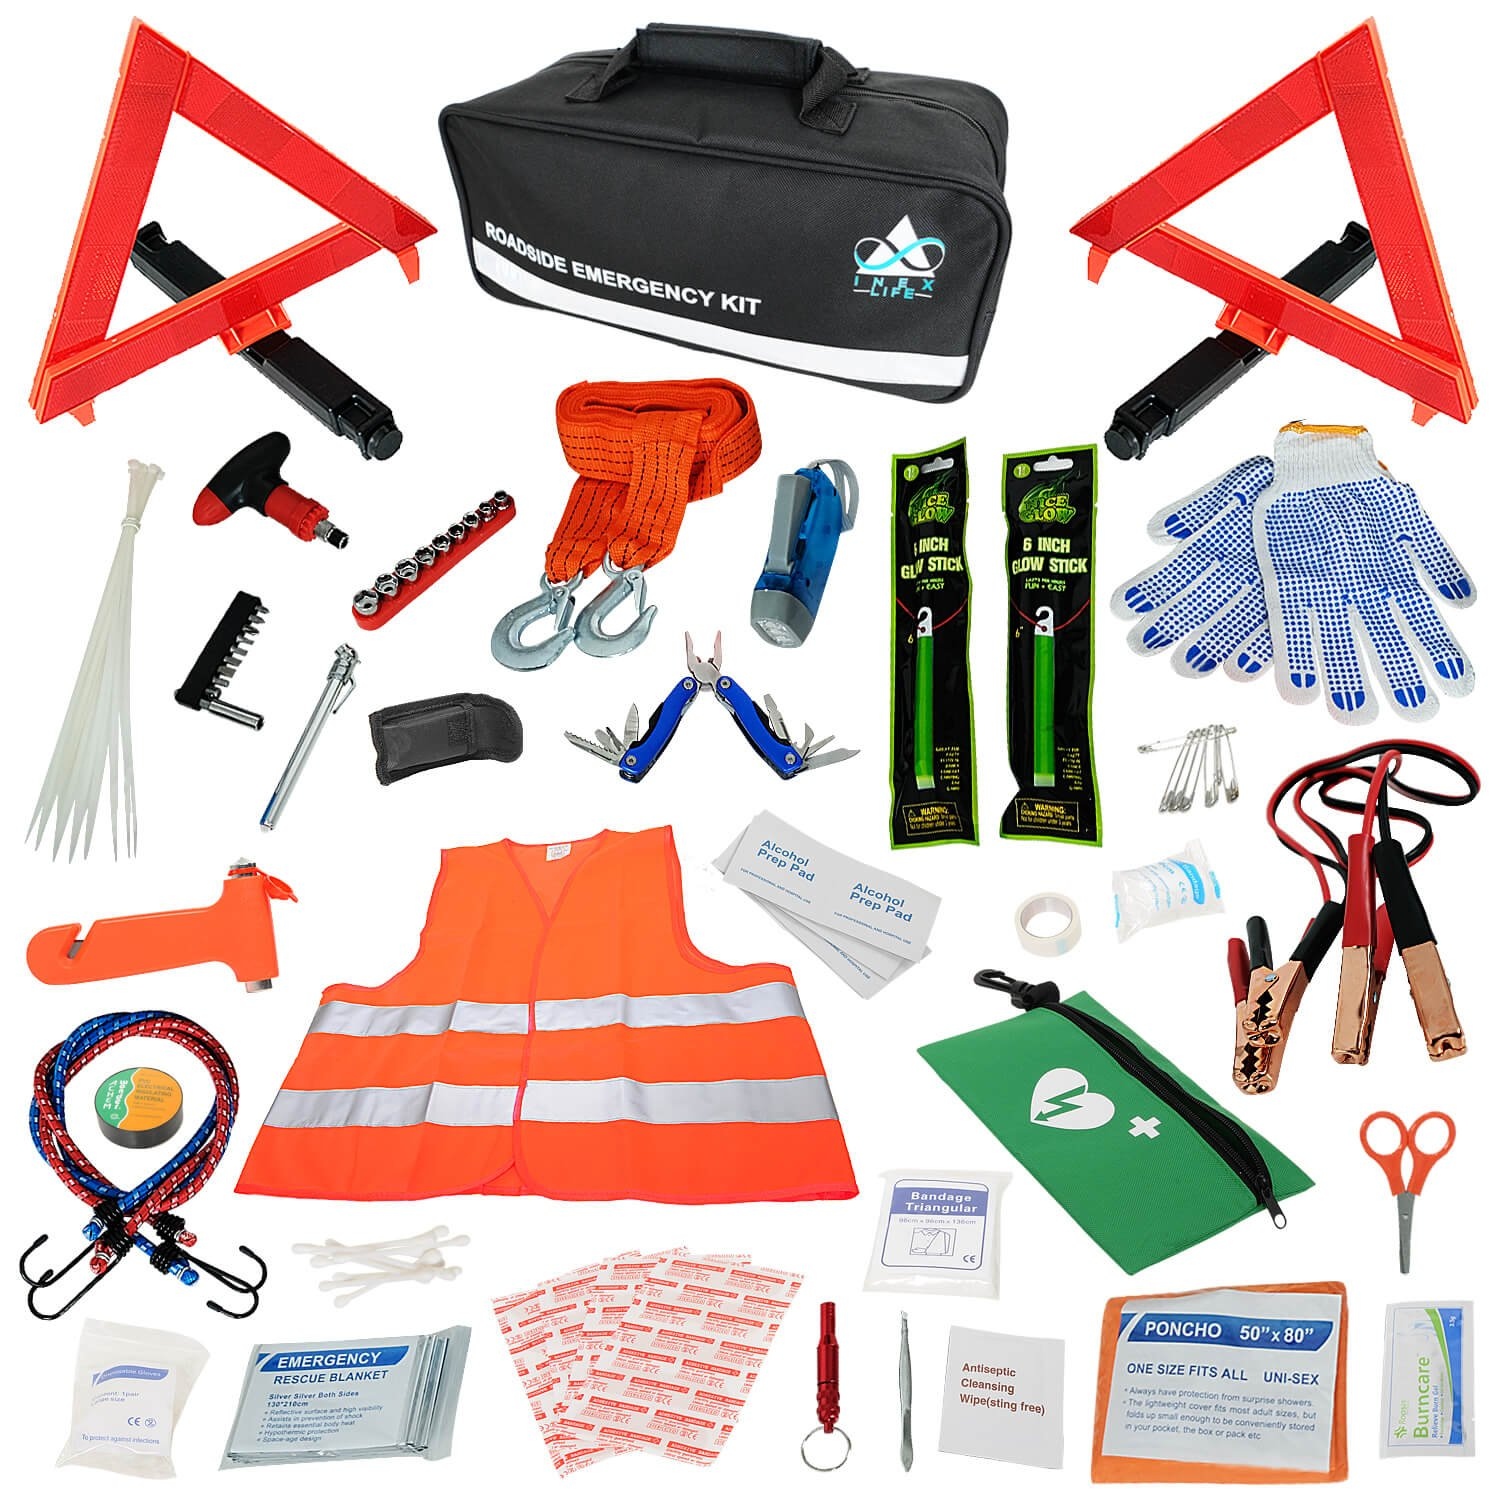 Car Emergency Roadside Assistance Kit 112 Pieces - First Aid Kit, Premium Jumper Cables, Reflective Safety Triangle, Tow Strap, Tools, Warning Vest | Ultimate All-In-One Survival Solution Auto, Truck